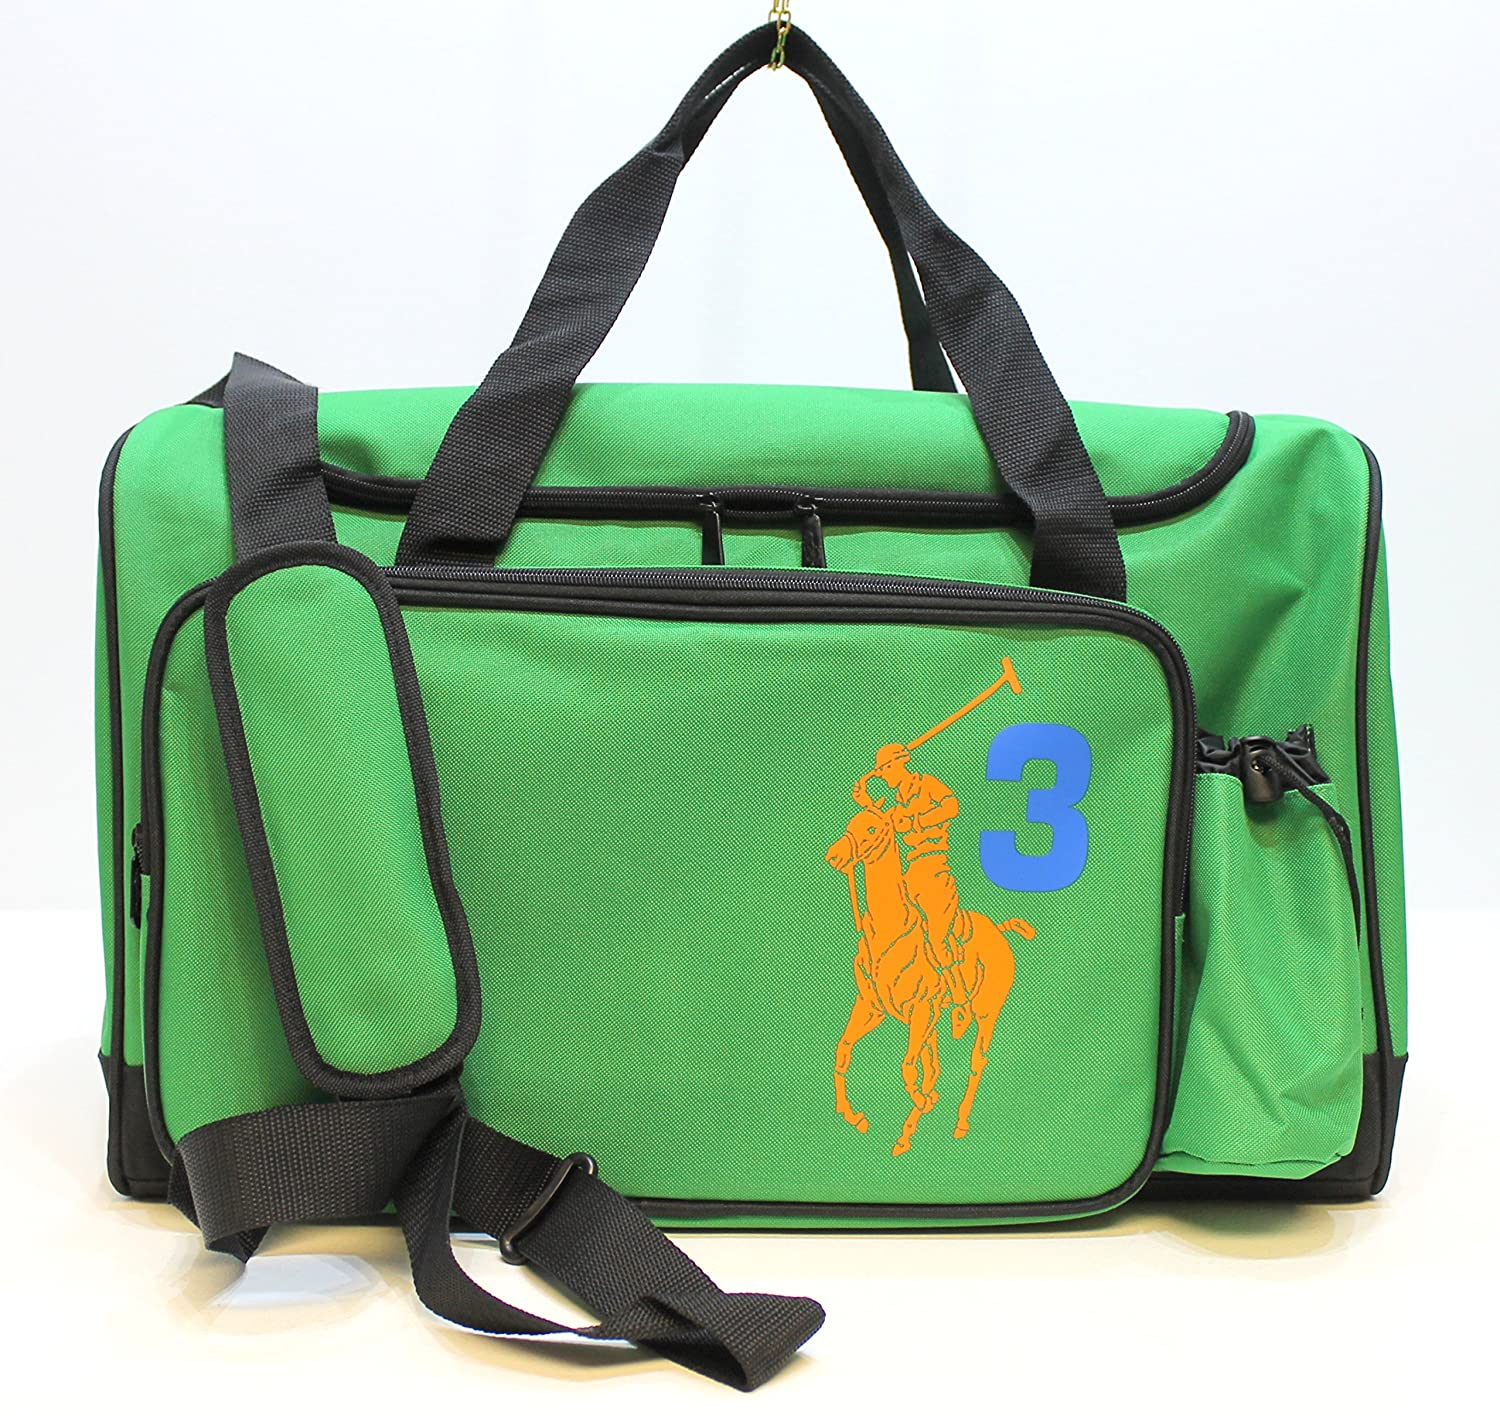 Ralph Lauren Sporty Big Pony Casual Luggage Green